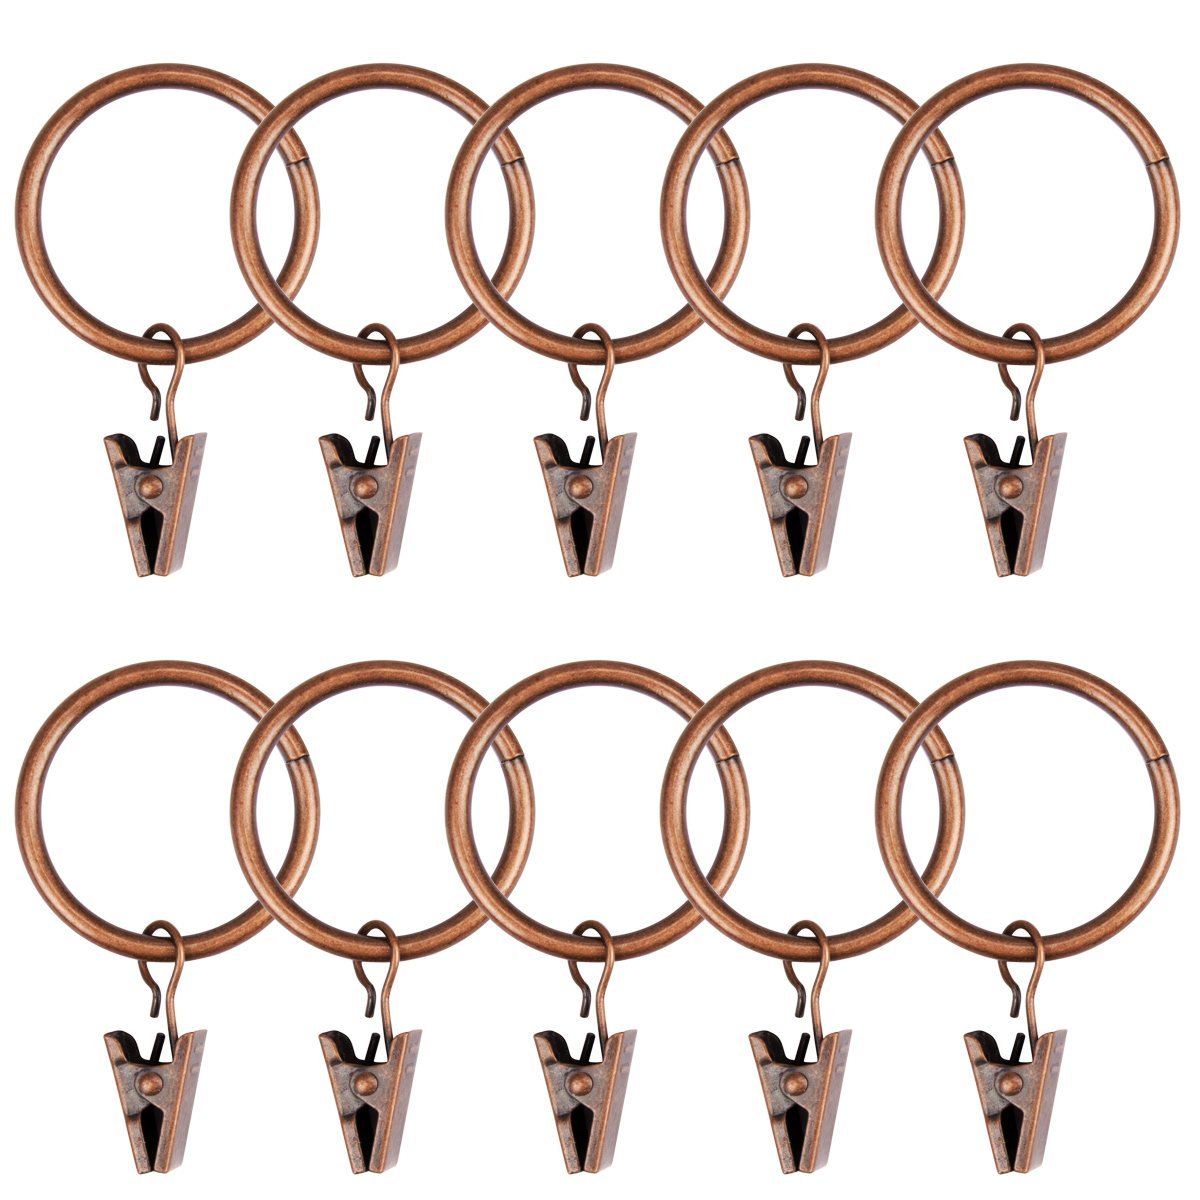 Amariver 40 Pack Metal Curtain Clips Rings, Red Copper Decorative Drapery Rustproof Window Curtain Ring with Clip